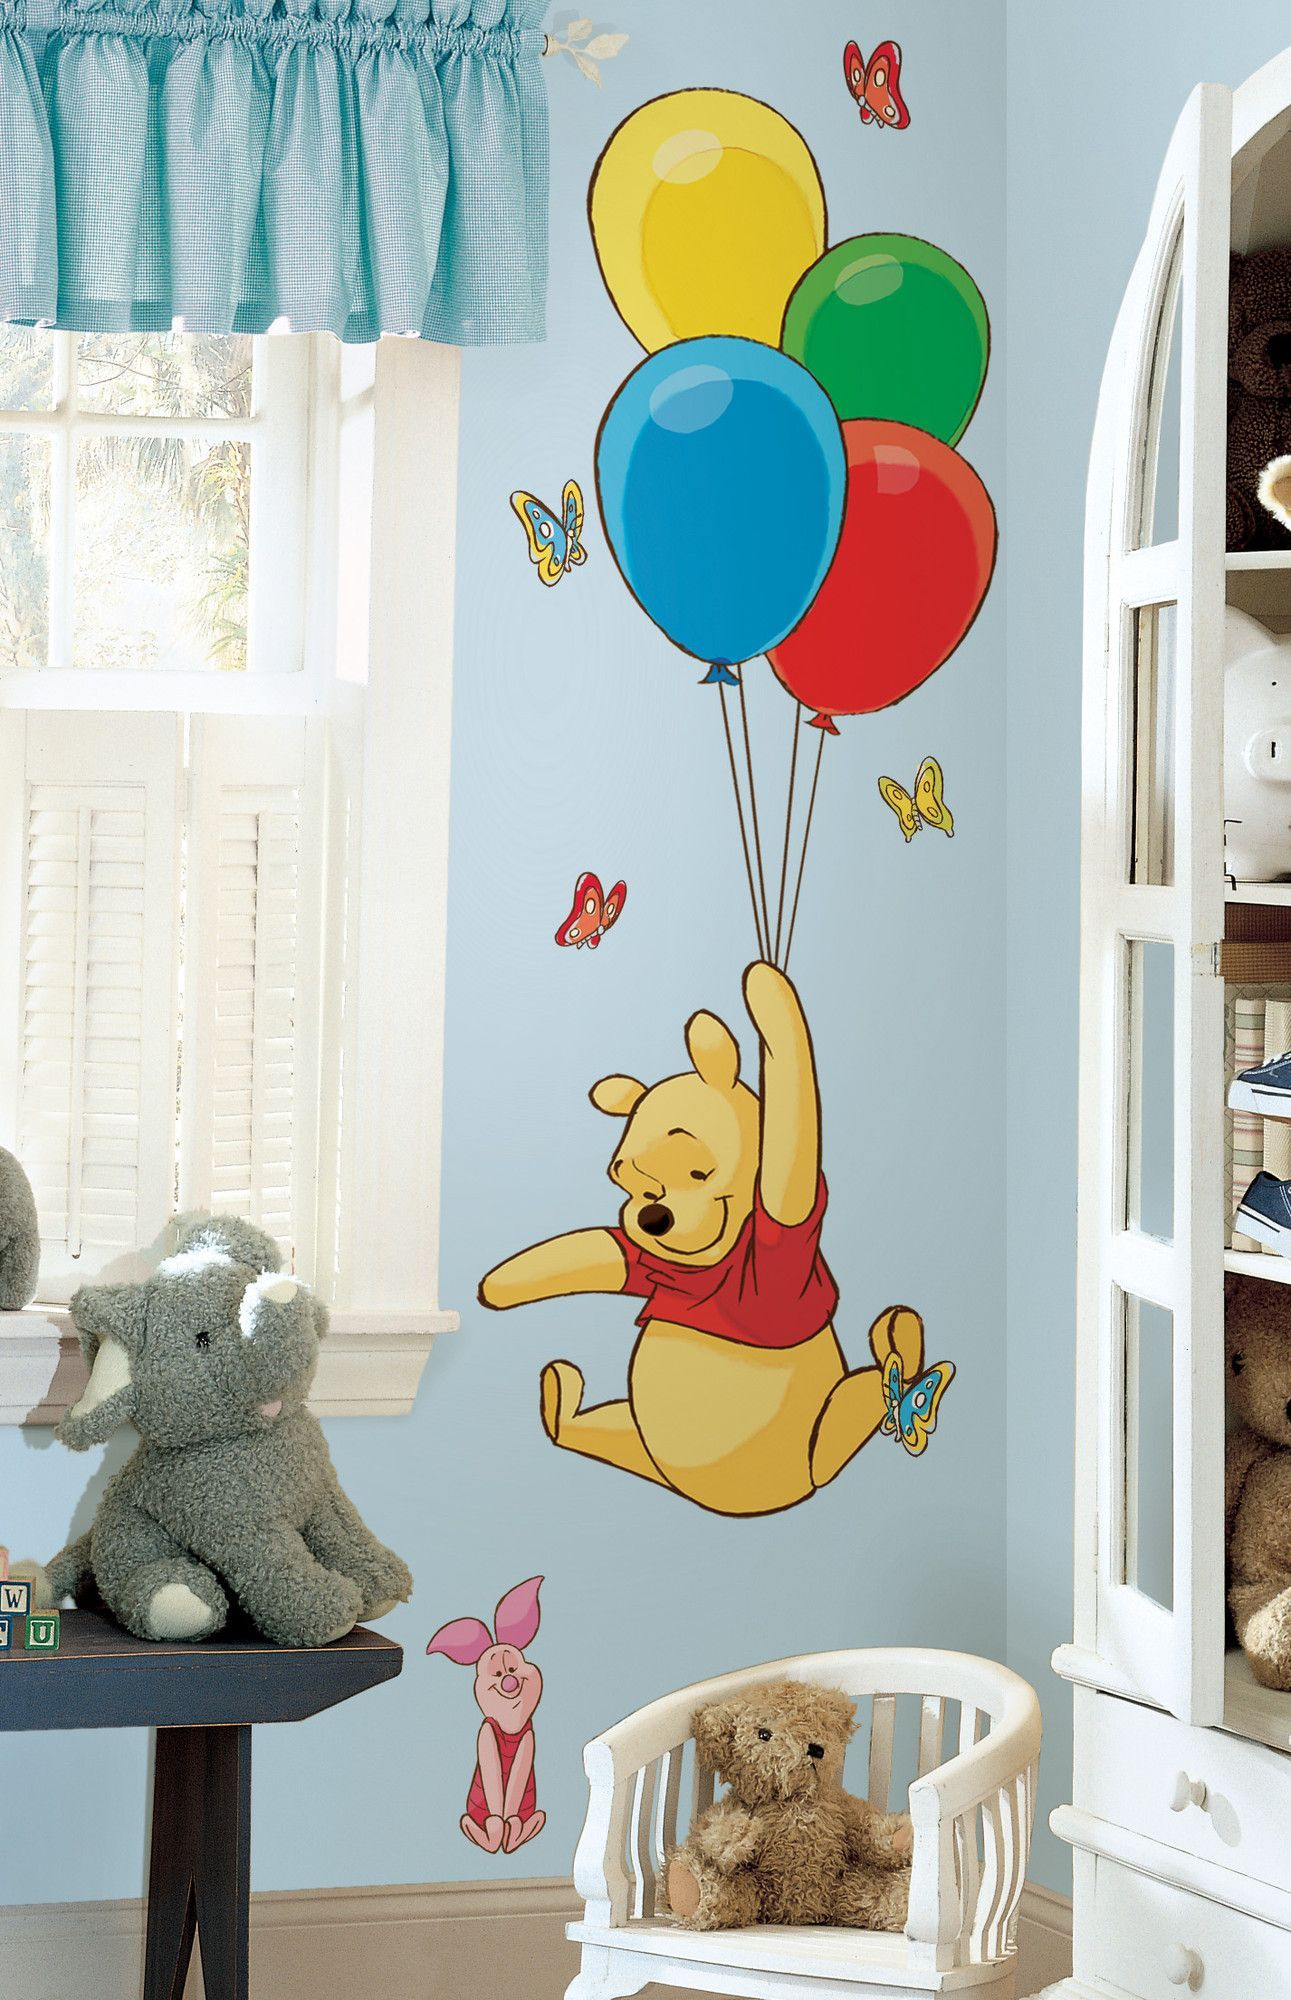 Disney Pooh and Piglet Cutout Wall Decal #setinstains